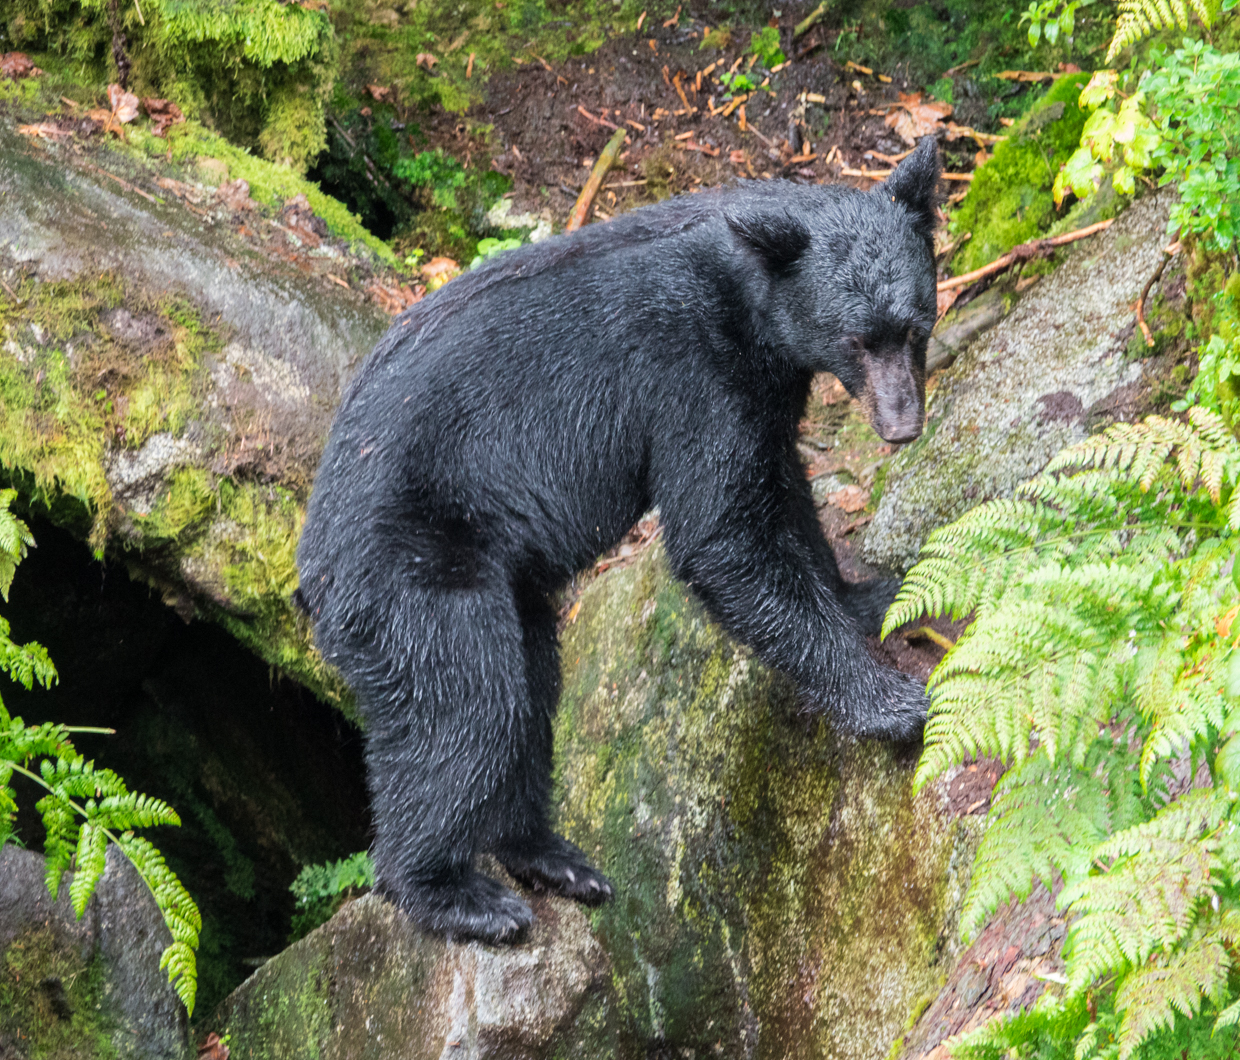 Where to find black bears in Alaska.